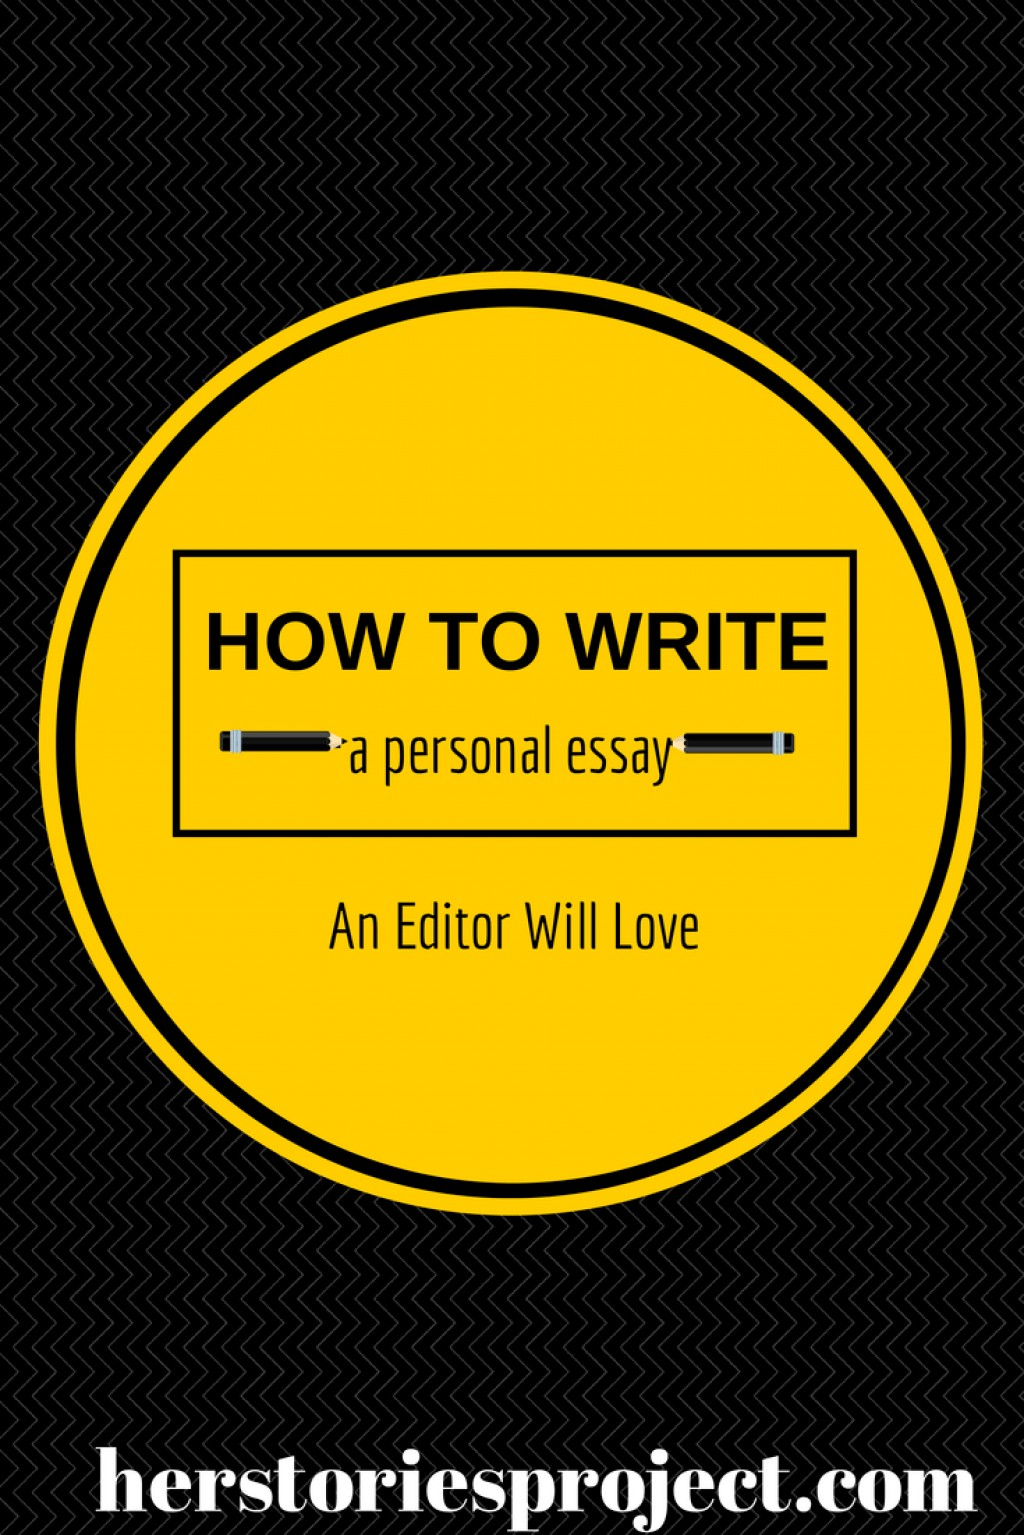 020 Essayeditorlove Essay Example Marvelous Editor Proofreading Jobs Job Online Large